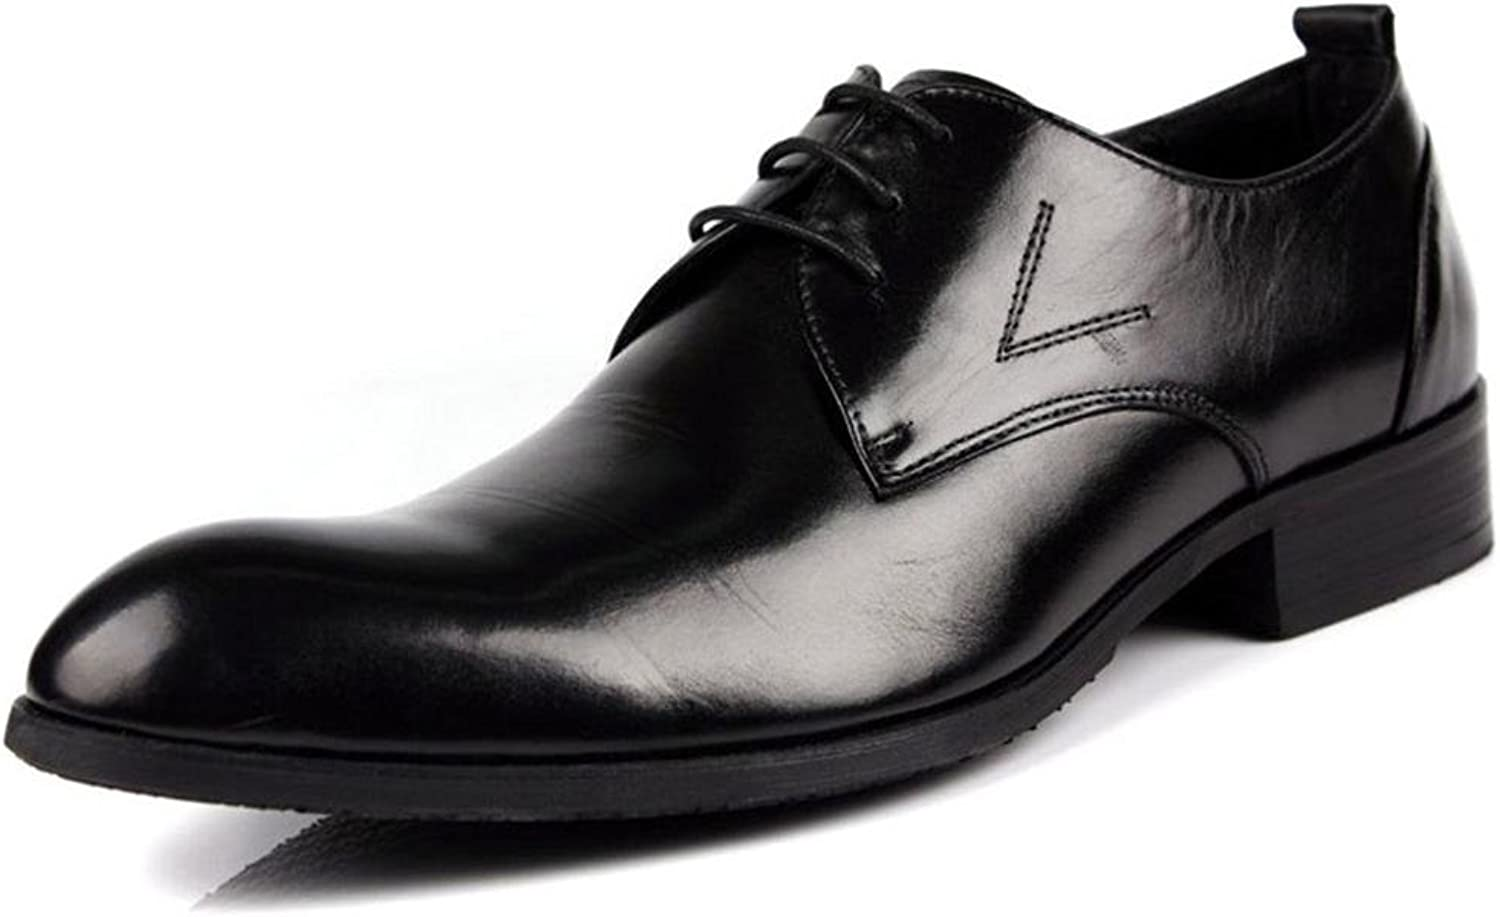 Mans Mans Mans Business läder Lace -up skor Flat Springaa Dress bspringaaa svart Points Single Casual Oxfords Storlek 38 -44  märken online billig försäljning